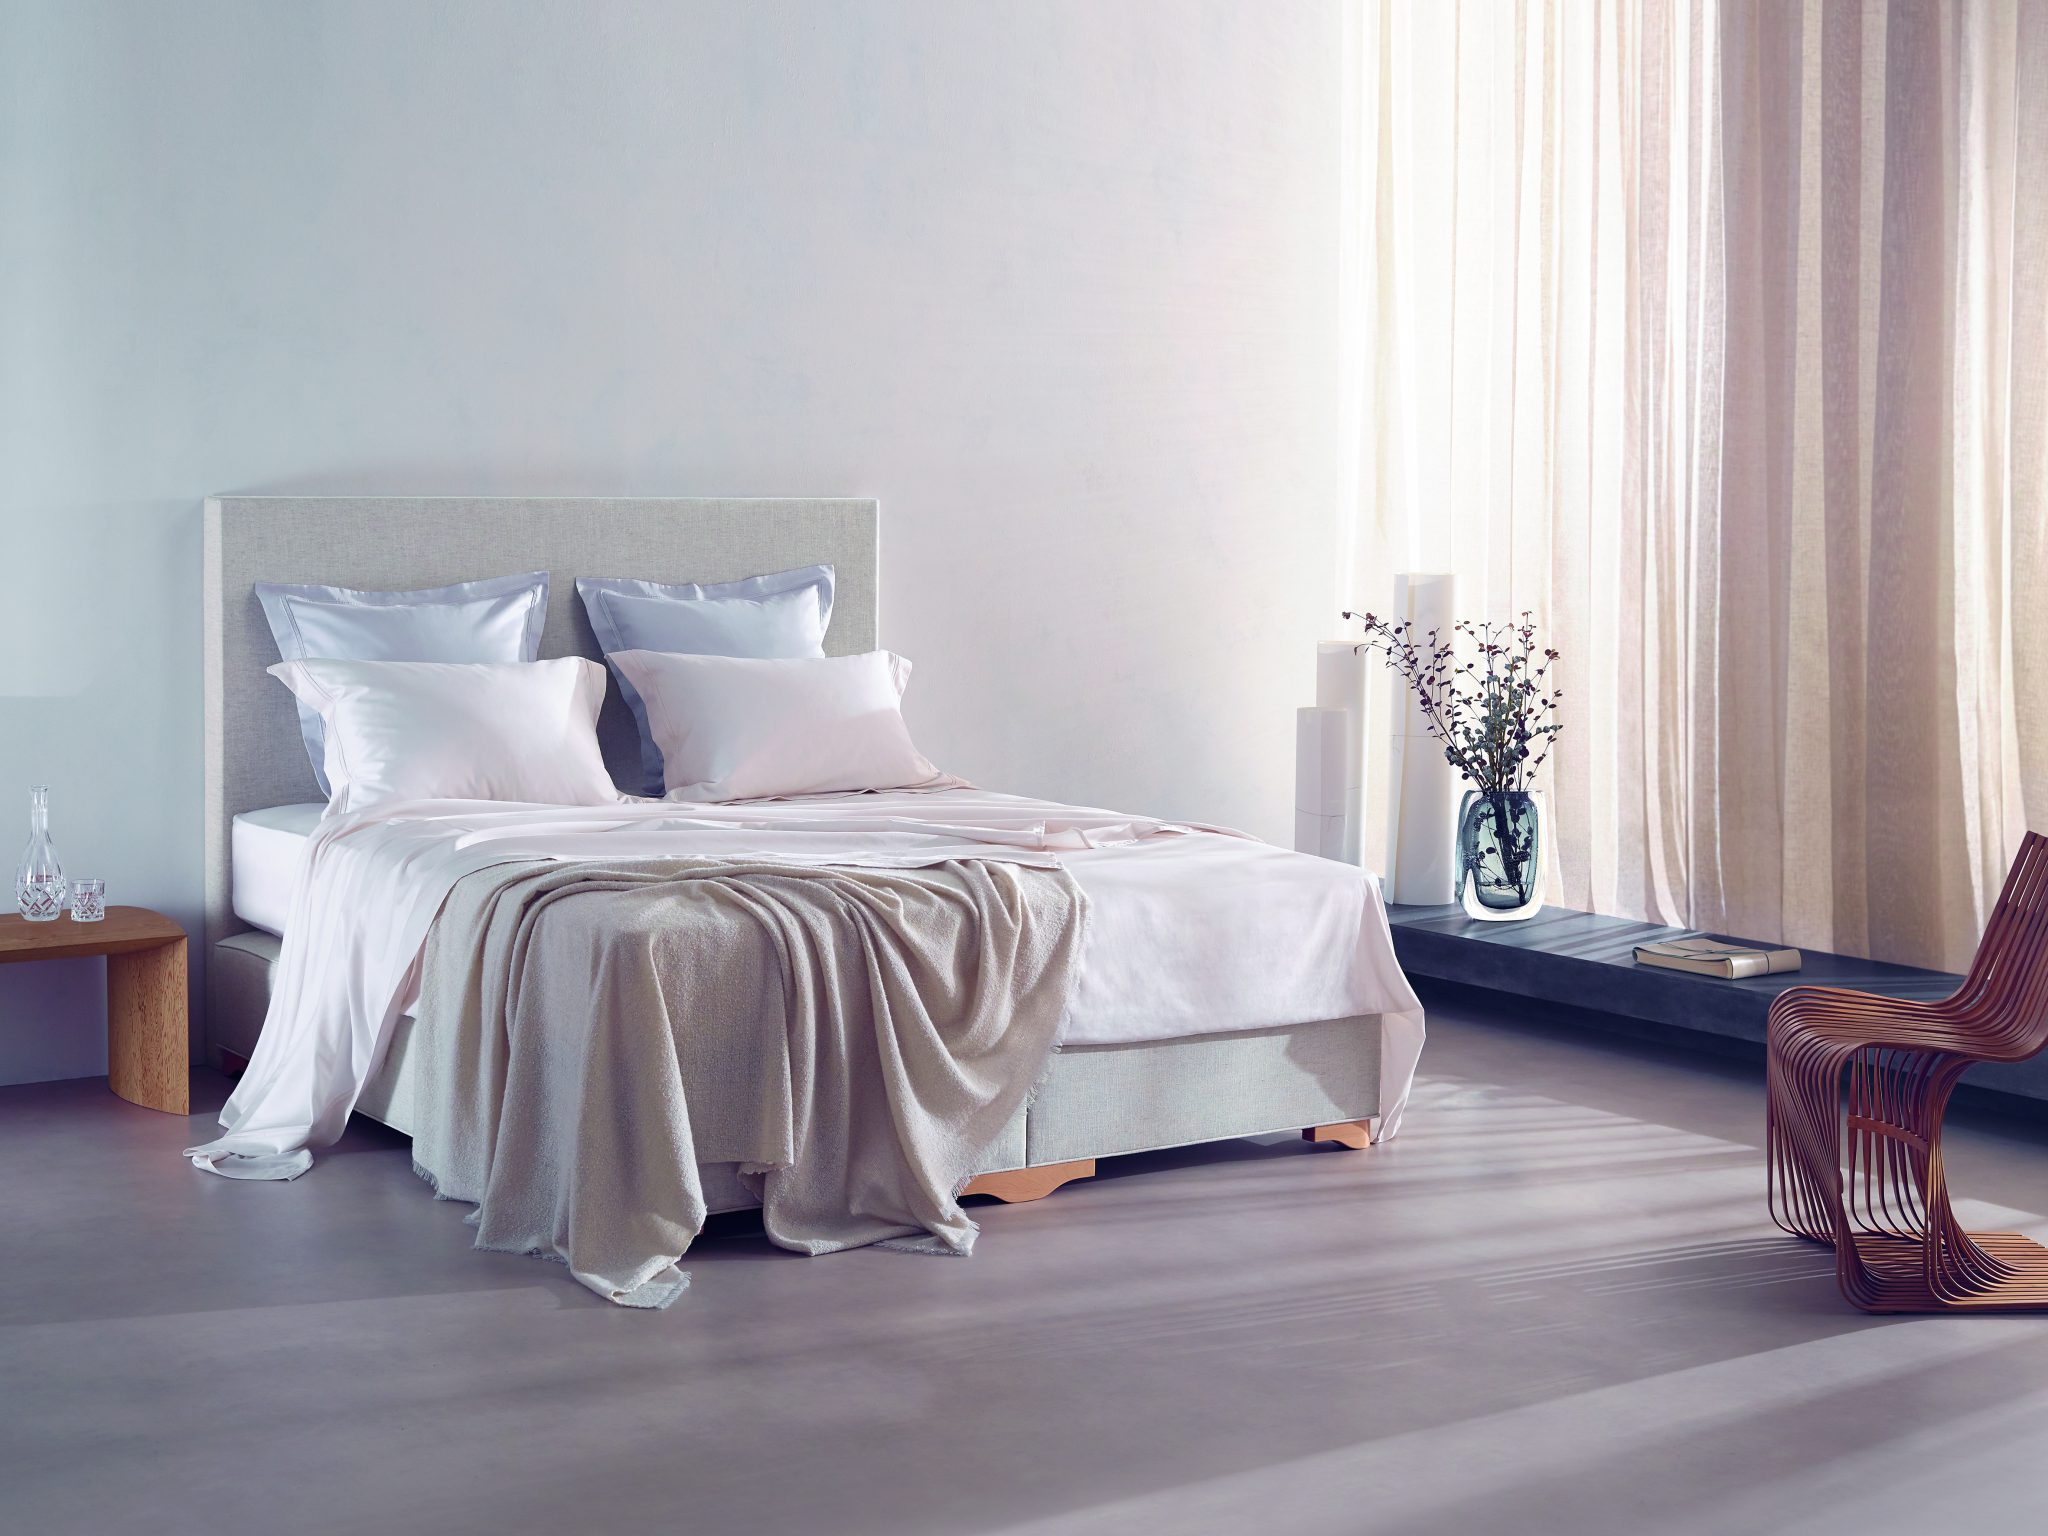 Kom voor Vispring Luxury Beds naar Jacques Clement Sleeping Concepts